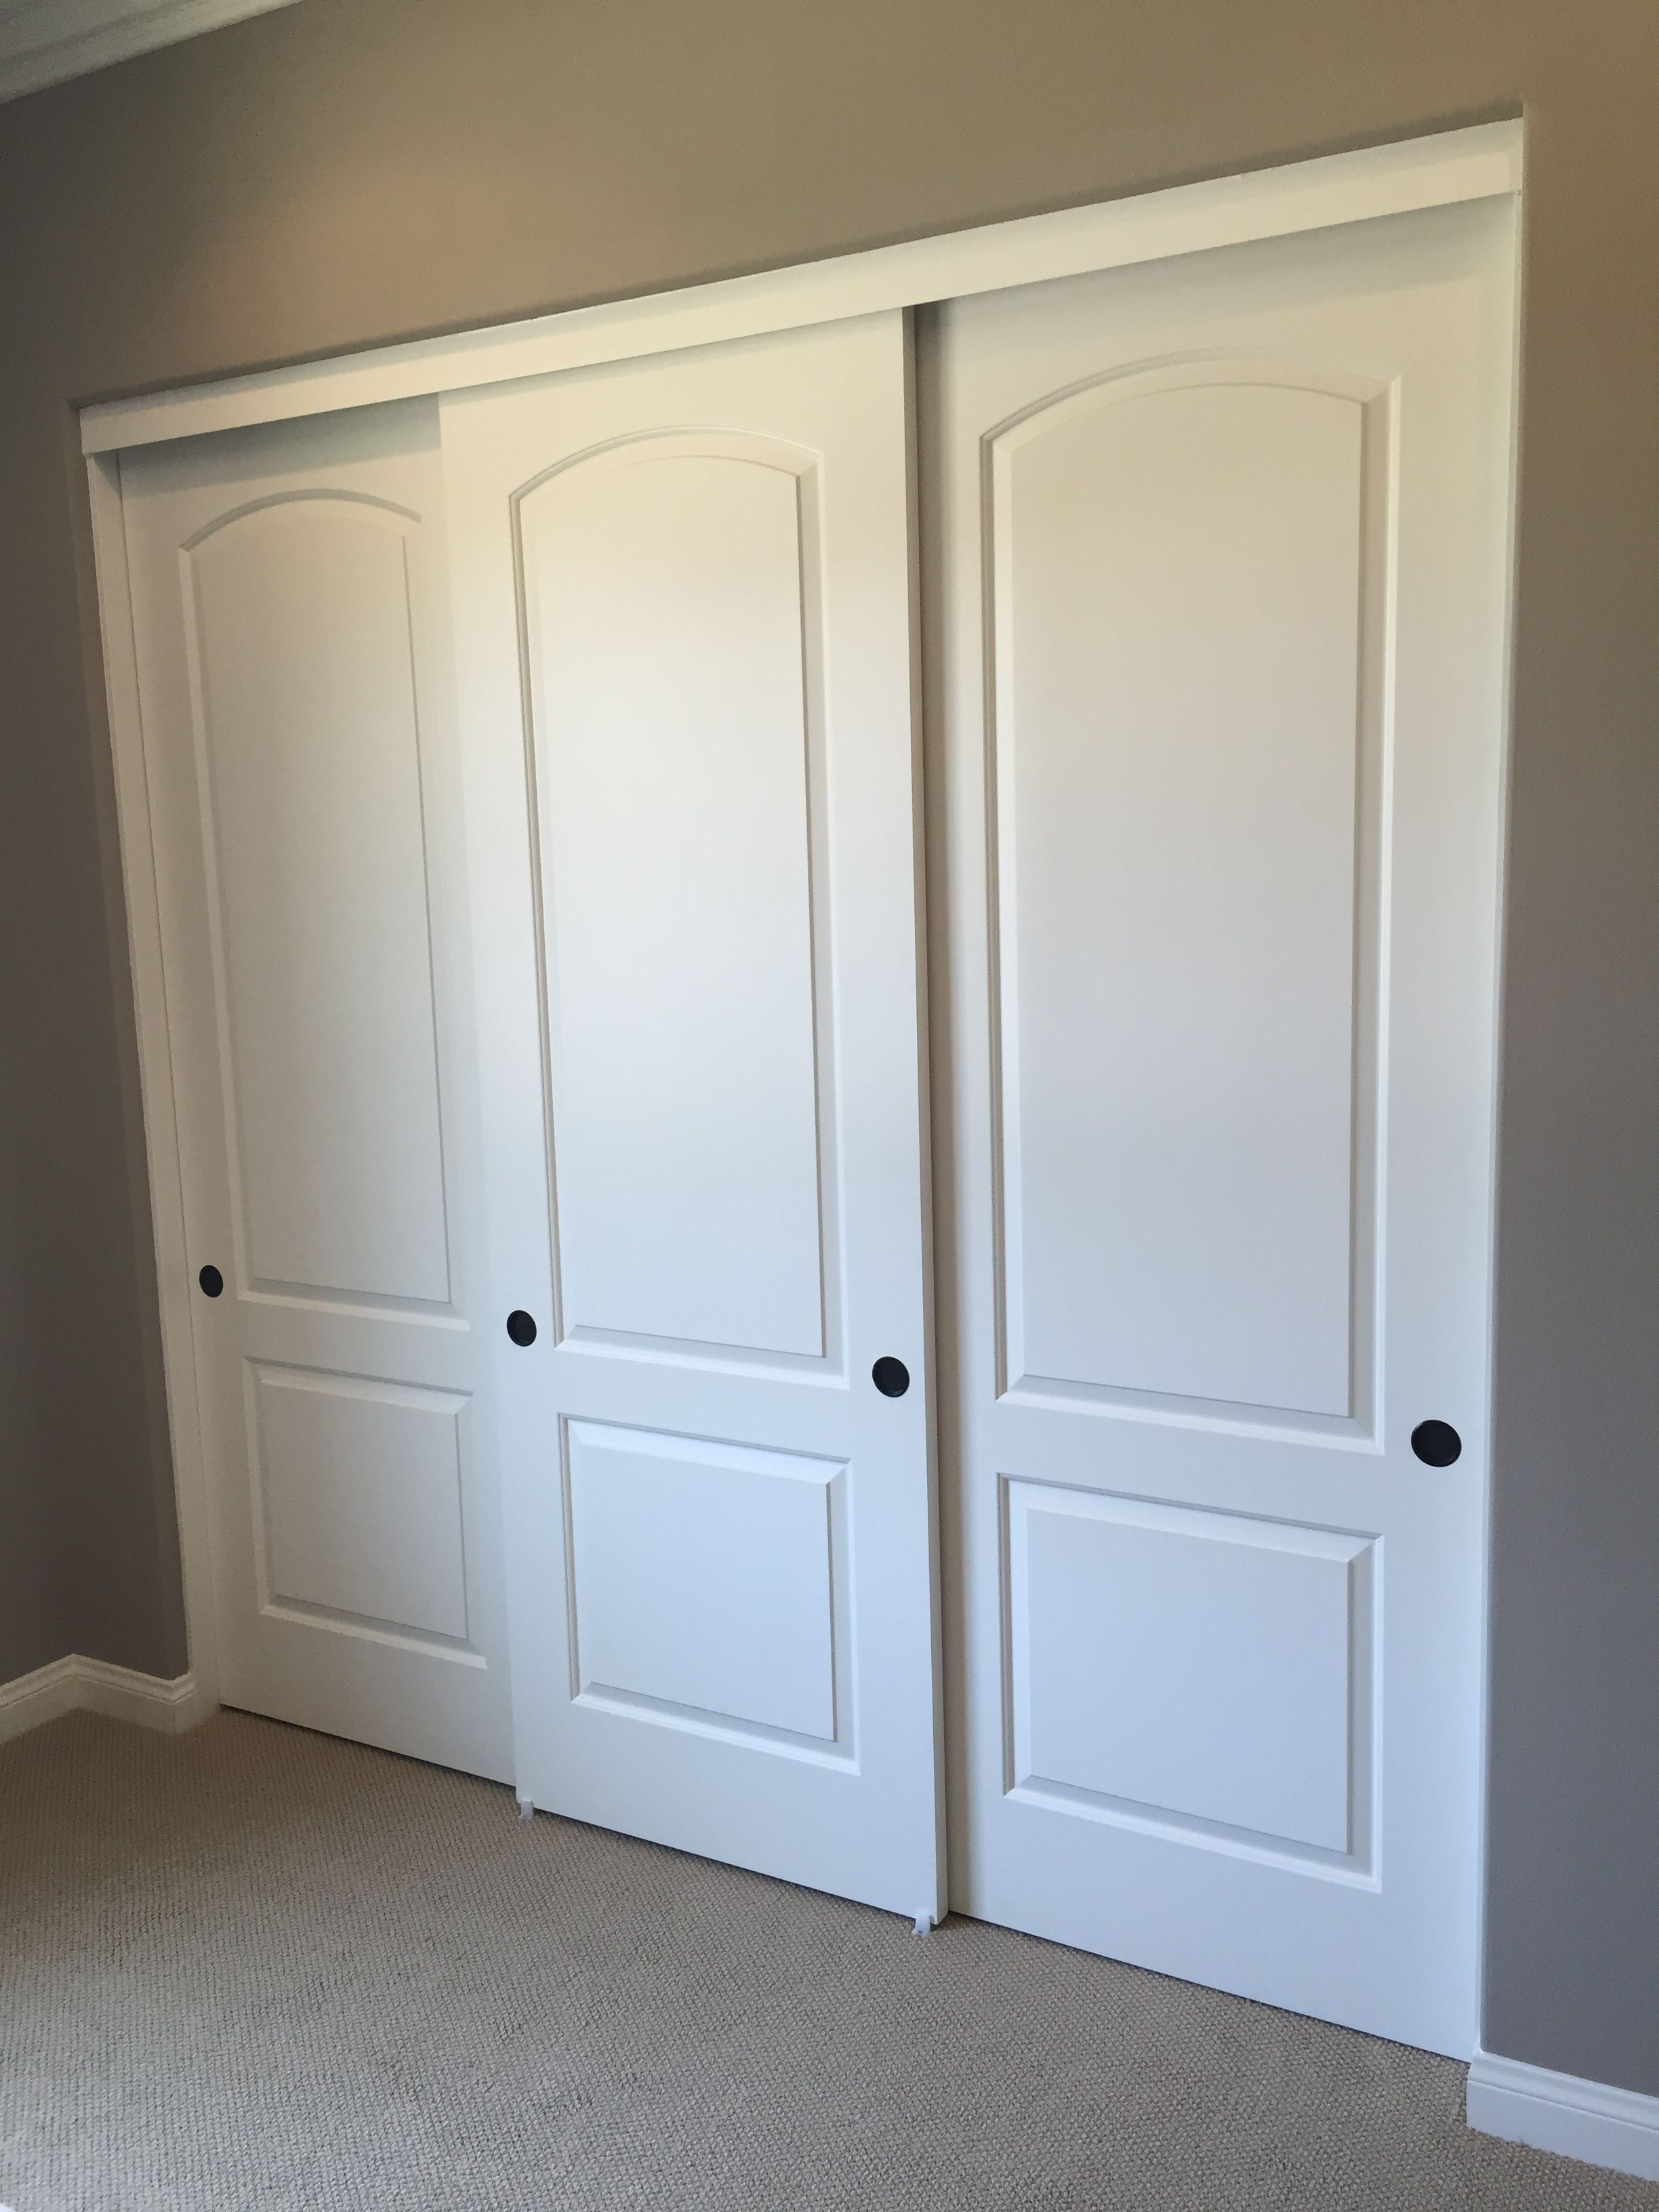 Sliding Bypass Closet Doors Of Southern California Are You